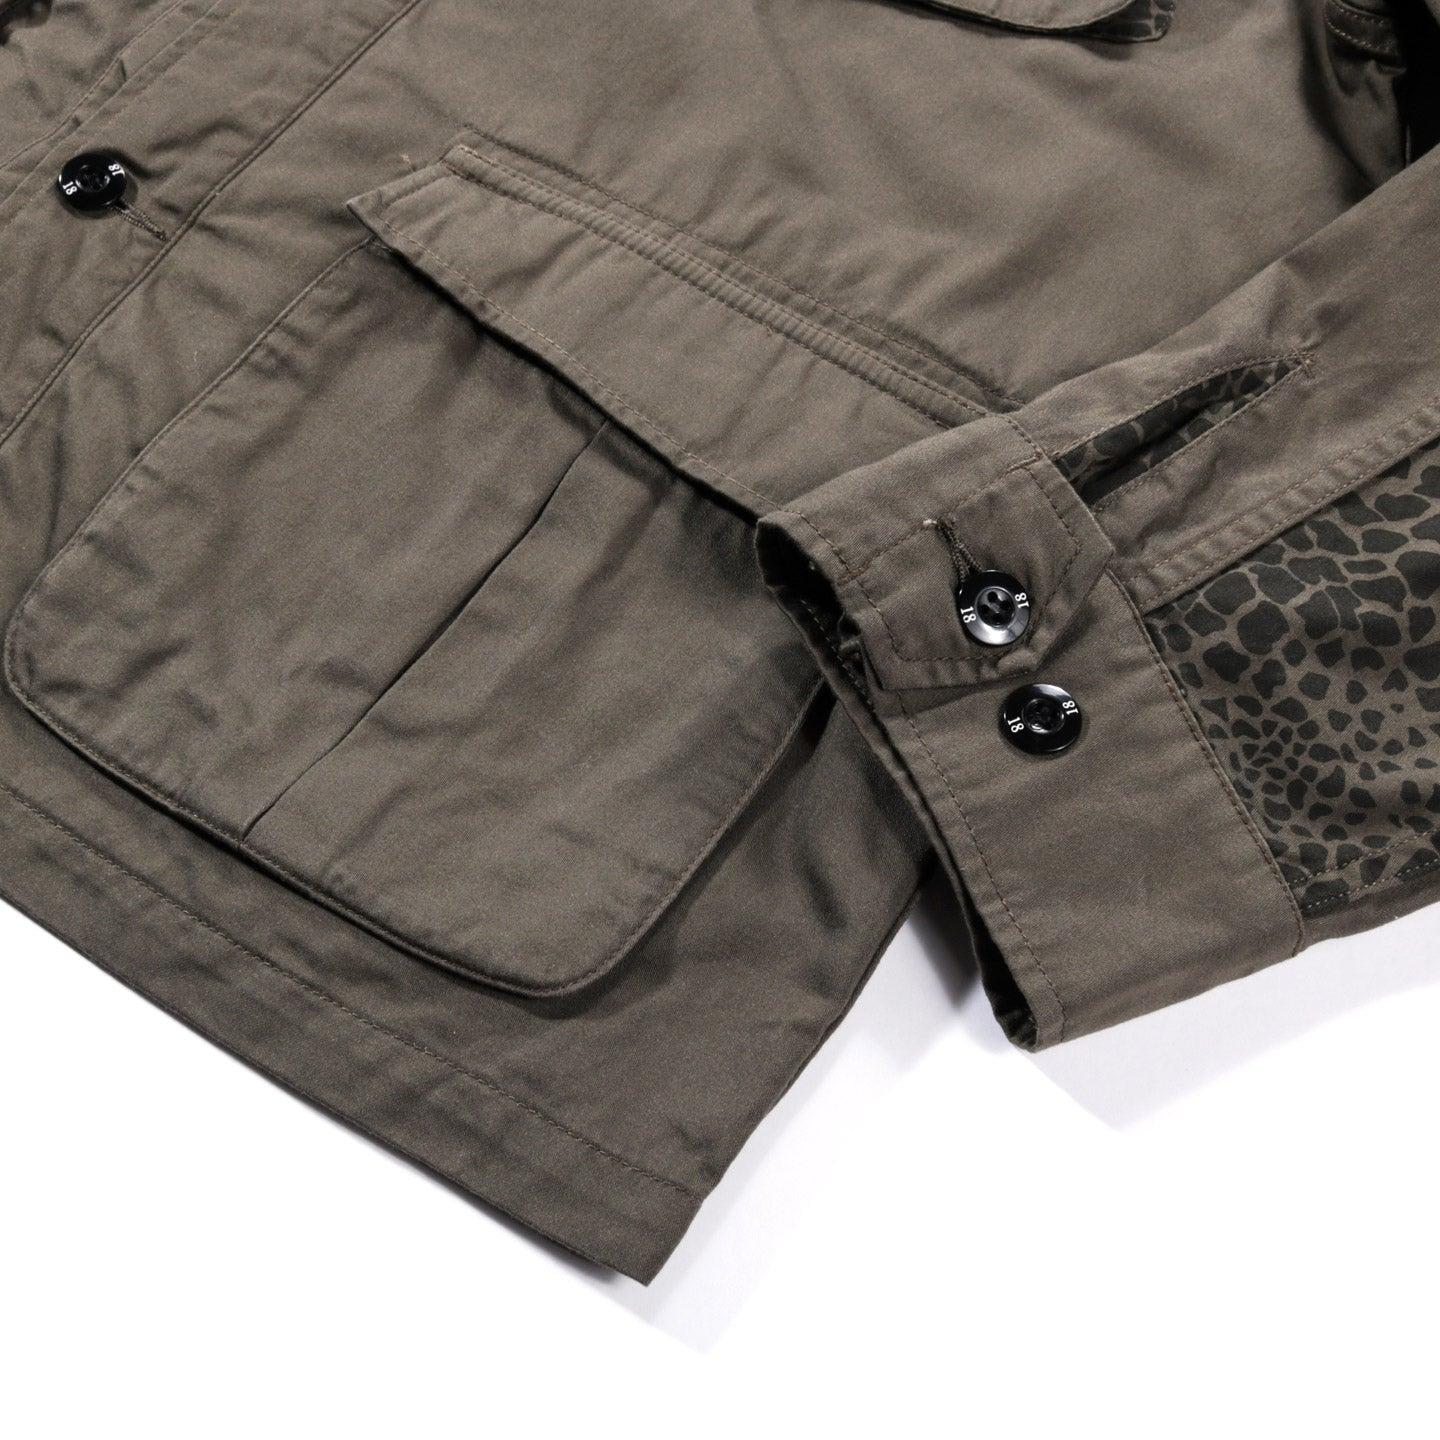 NEIGHBORHOOD MIL-CARGO OVERSHIRT OLIVE DRAB